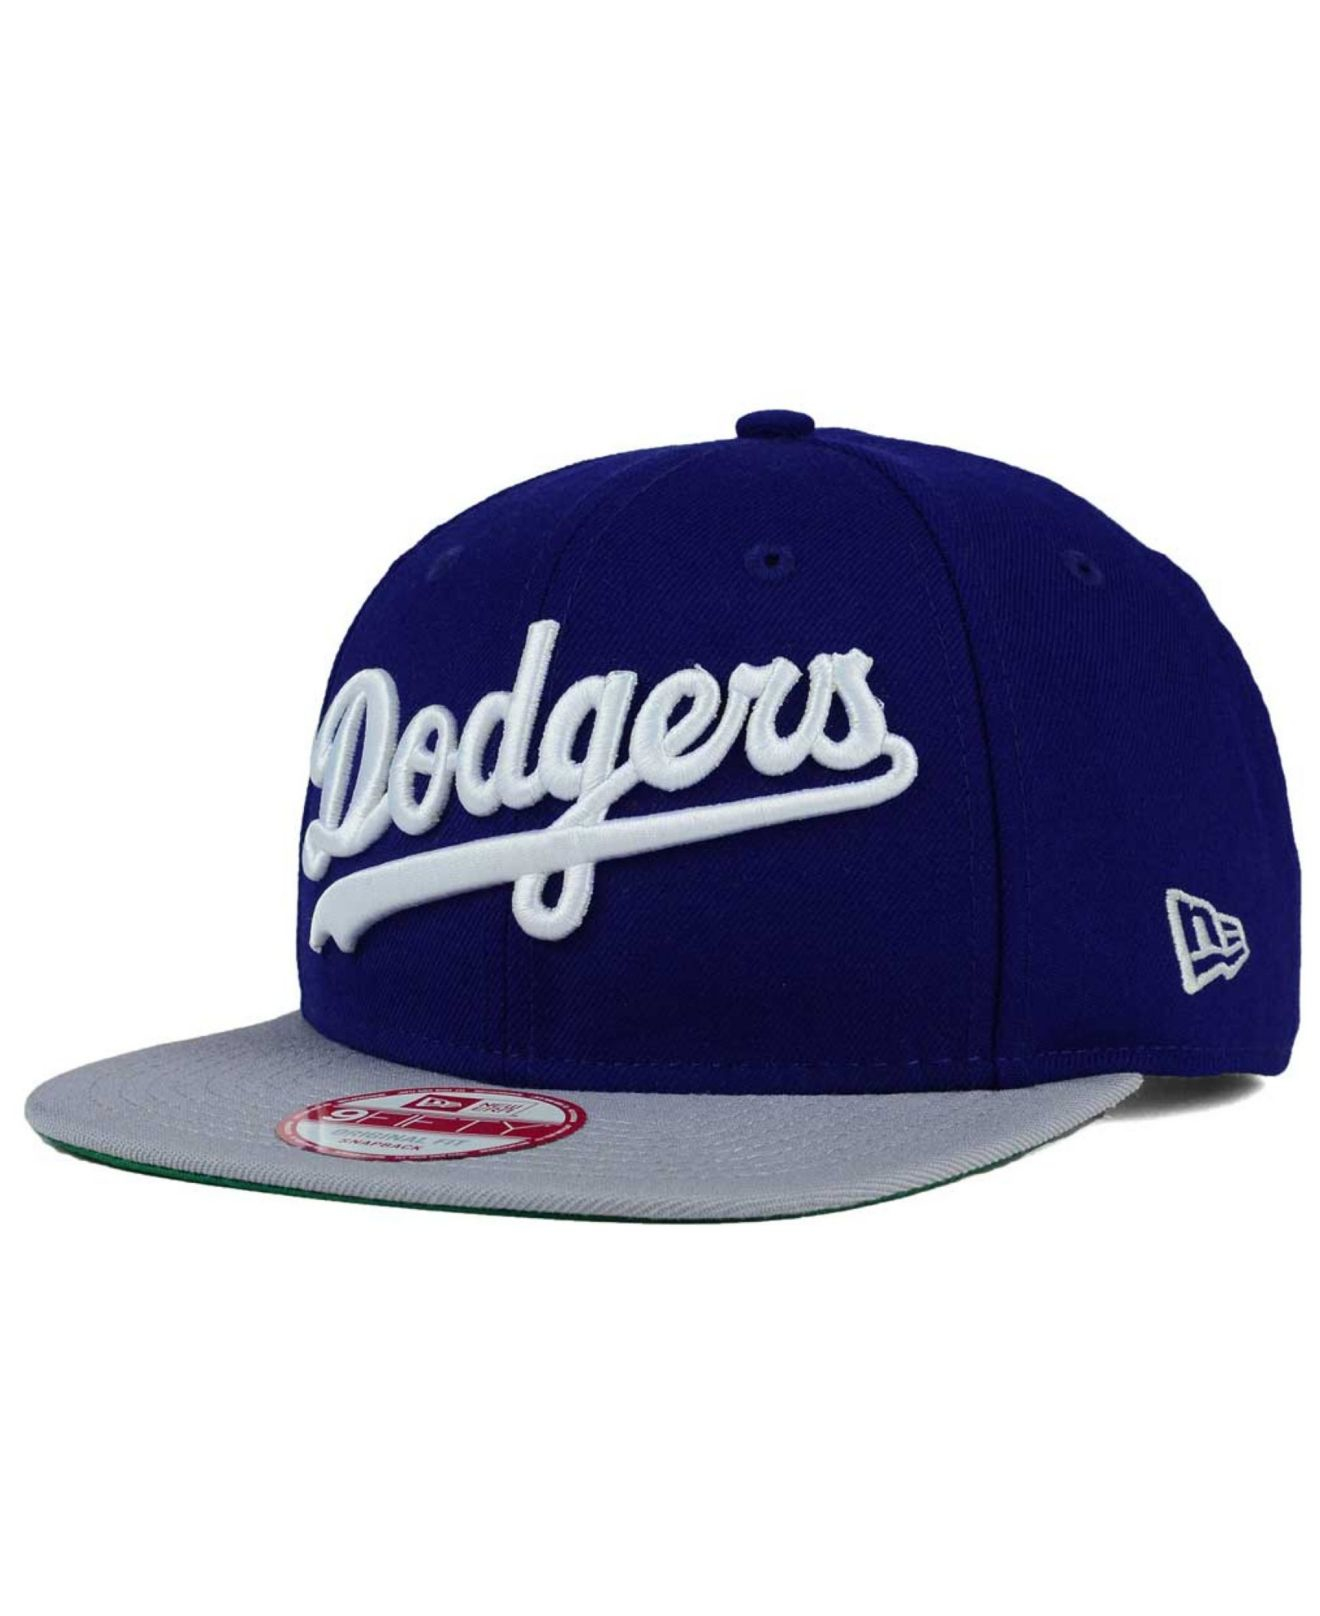 a311c4d4c0a ... new era royal mlb team classic 39thirty flex hat 00364 3333d   switzerland lyst ktz los angeles dodgers xl script 9fifty snapback cap in  blue 2e451 e0767